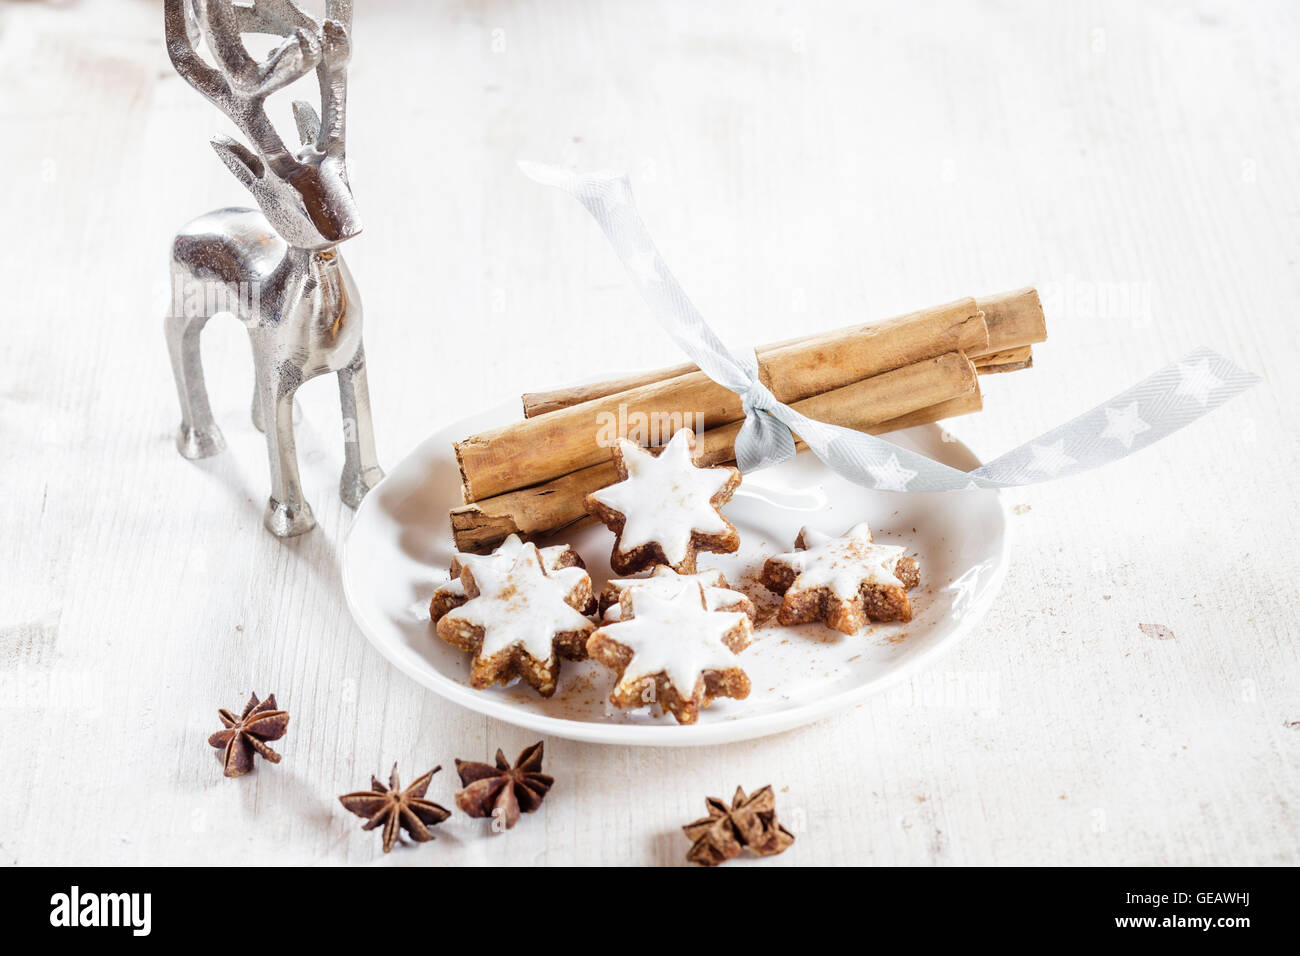 Home Baked Cinnamon Almond Cookies Stock Photos & Home Baked ...